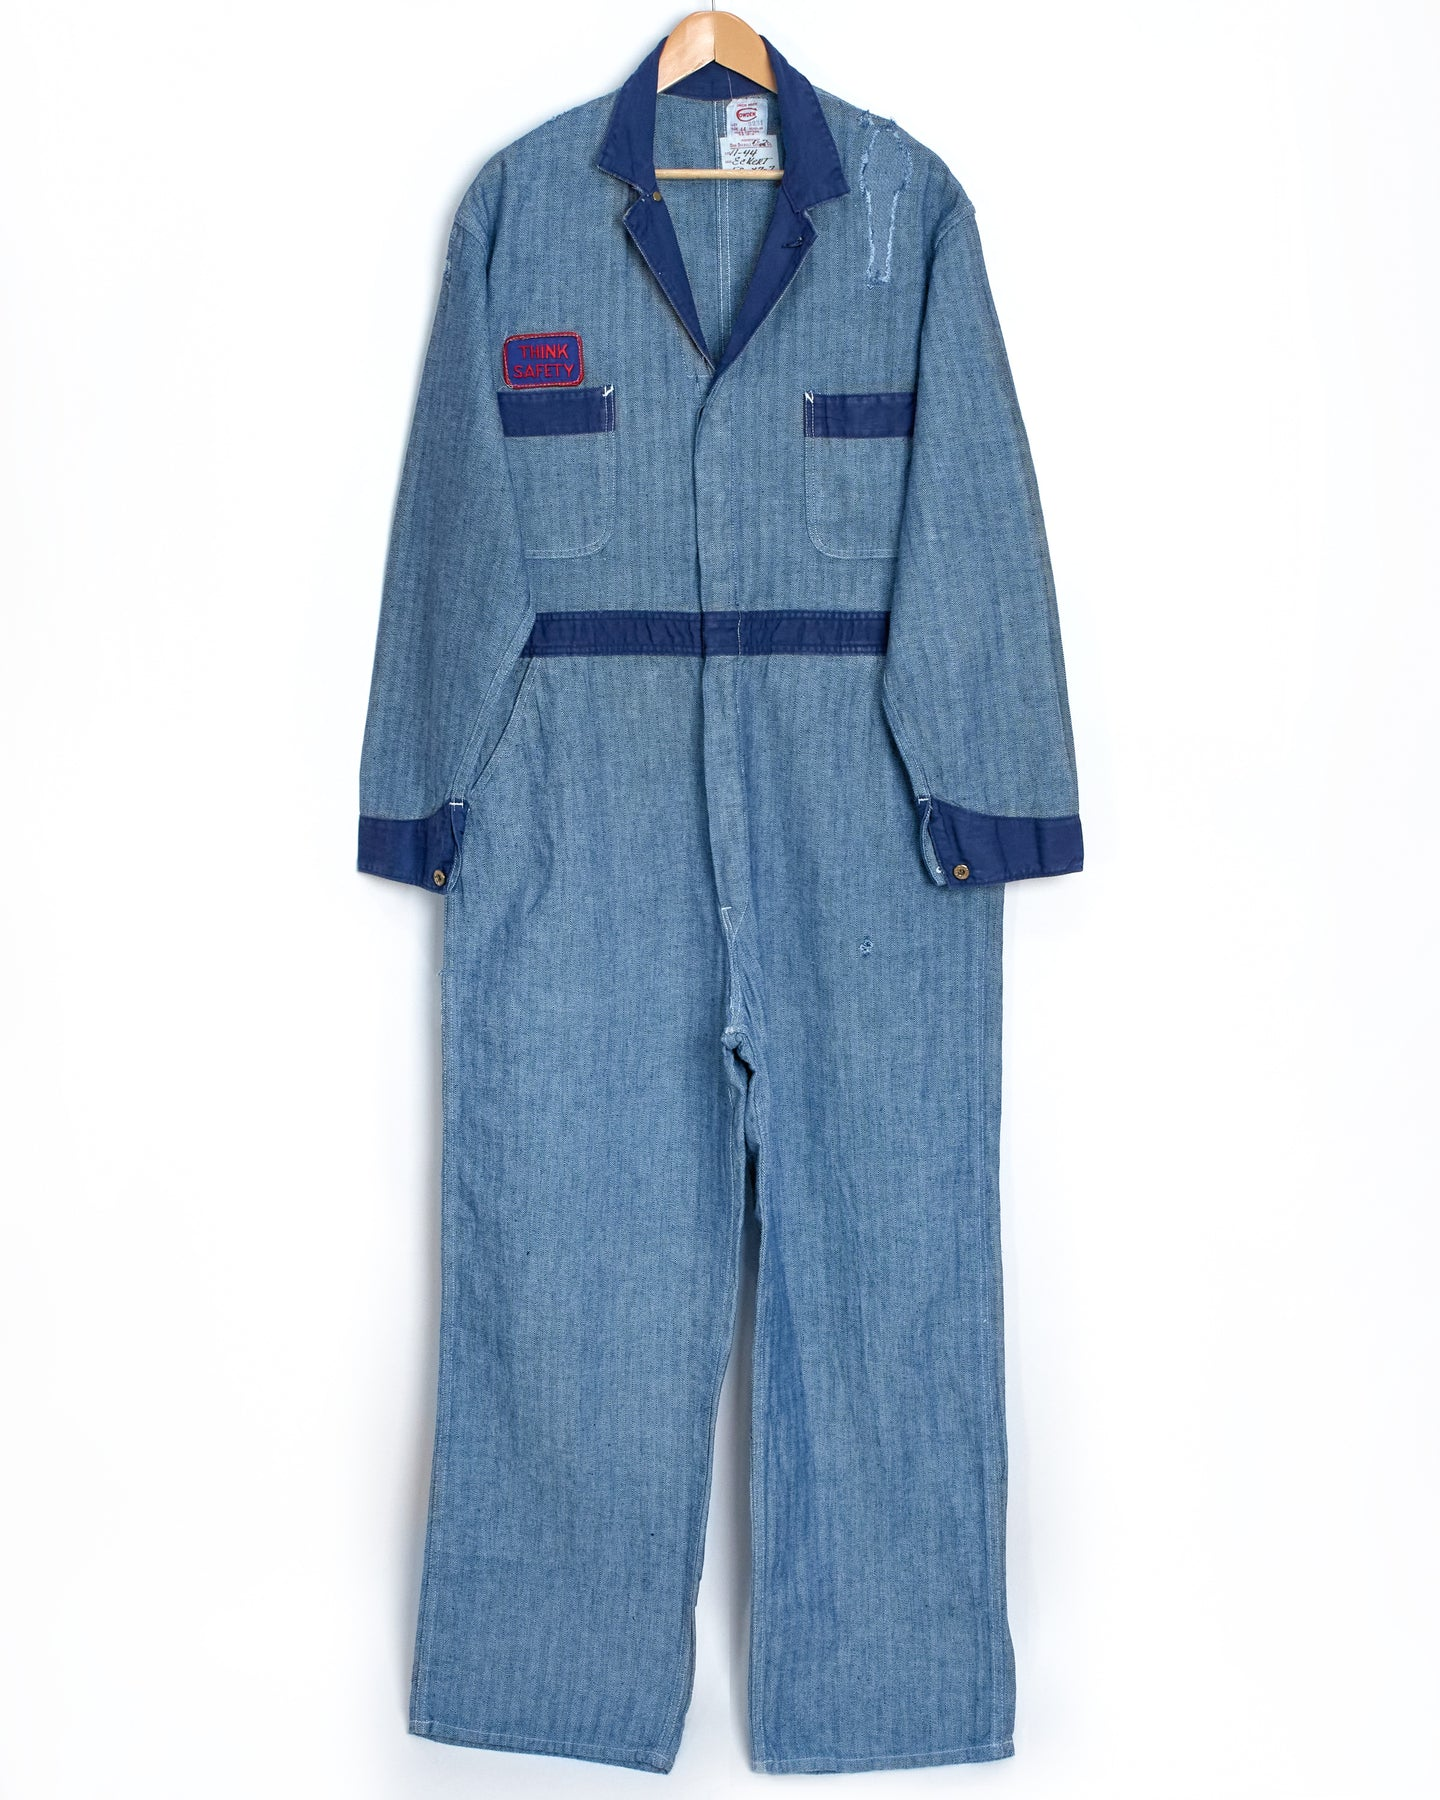 1960s Union Made Mechanic Coveralls